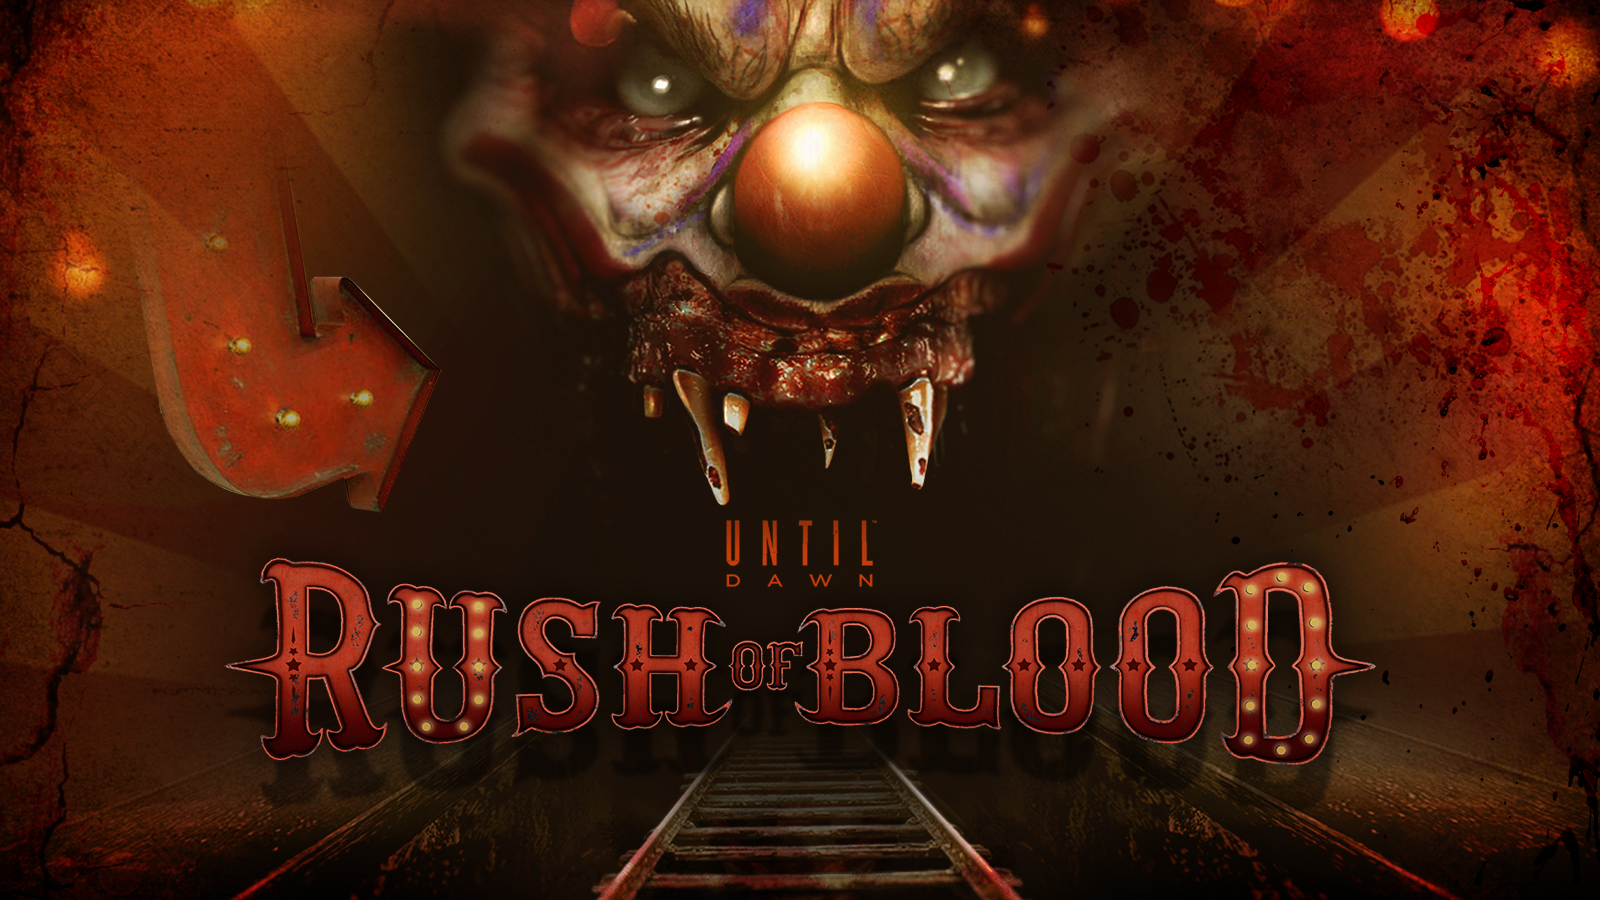 Free Games - Until Dawn Rush of Blood